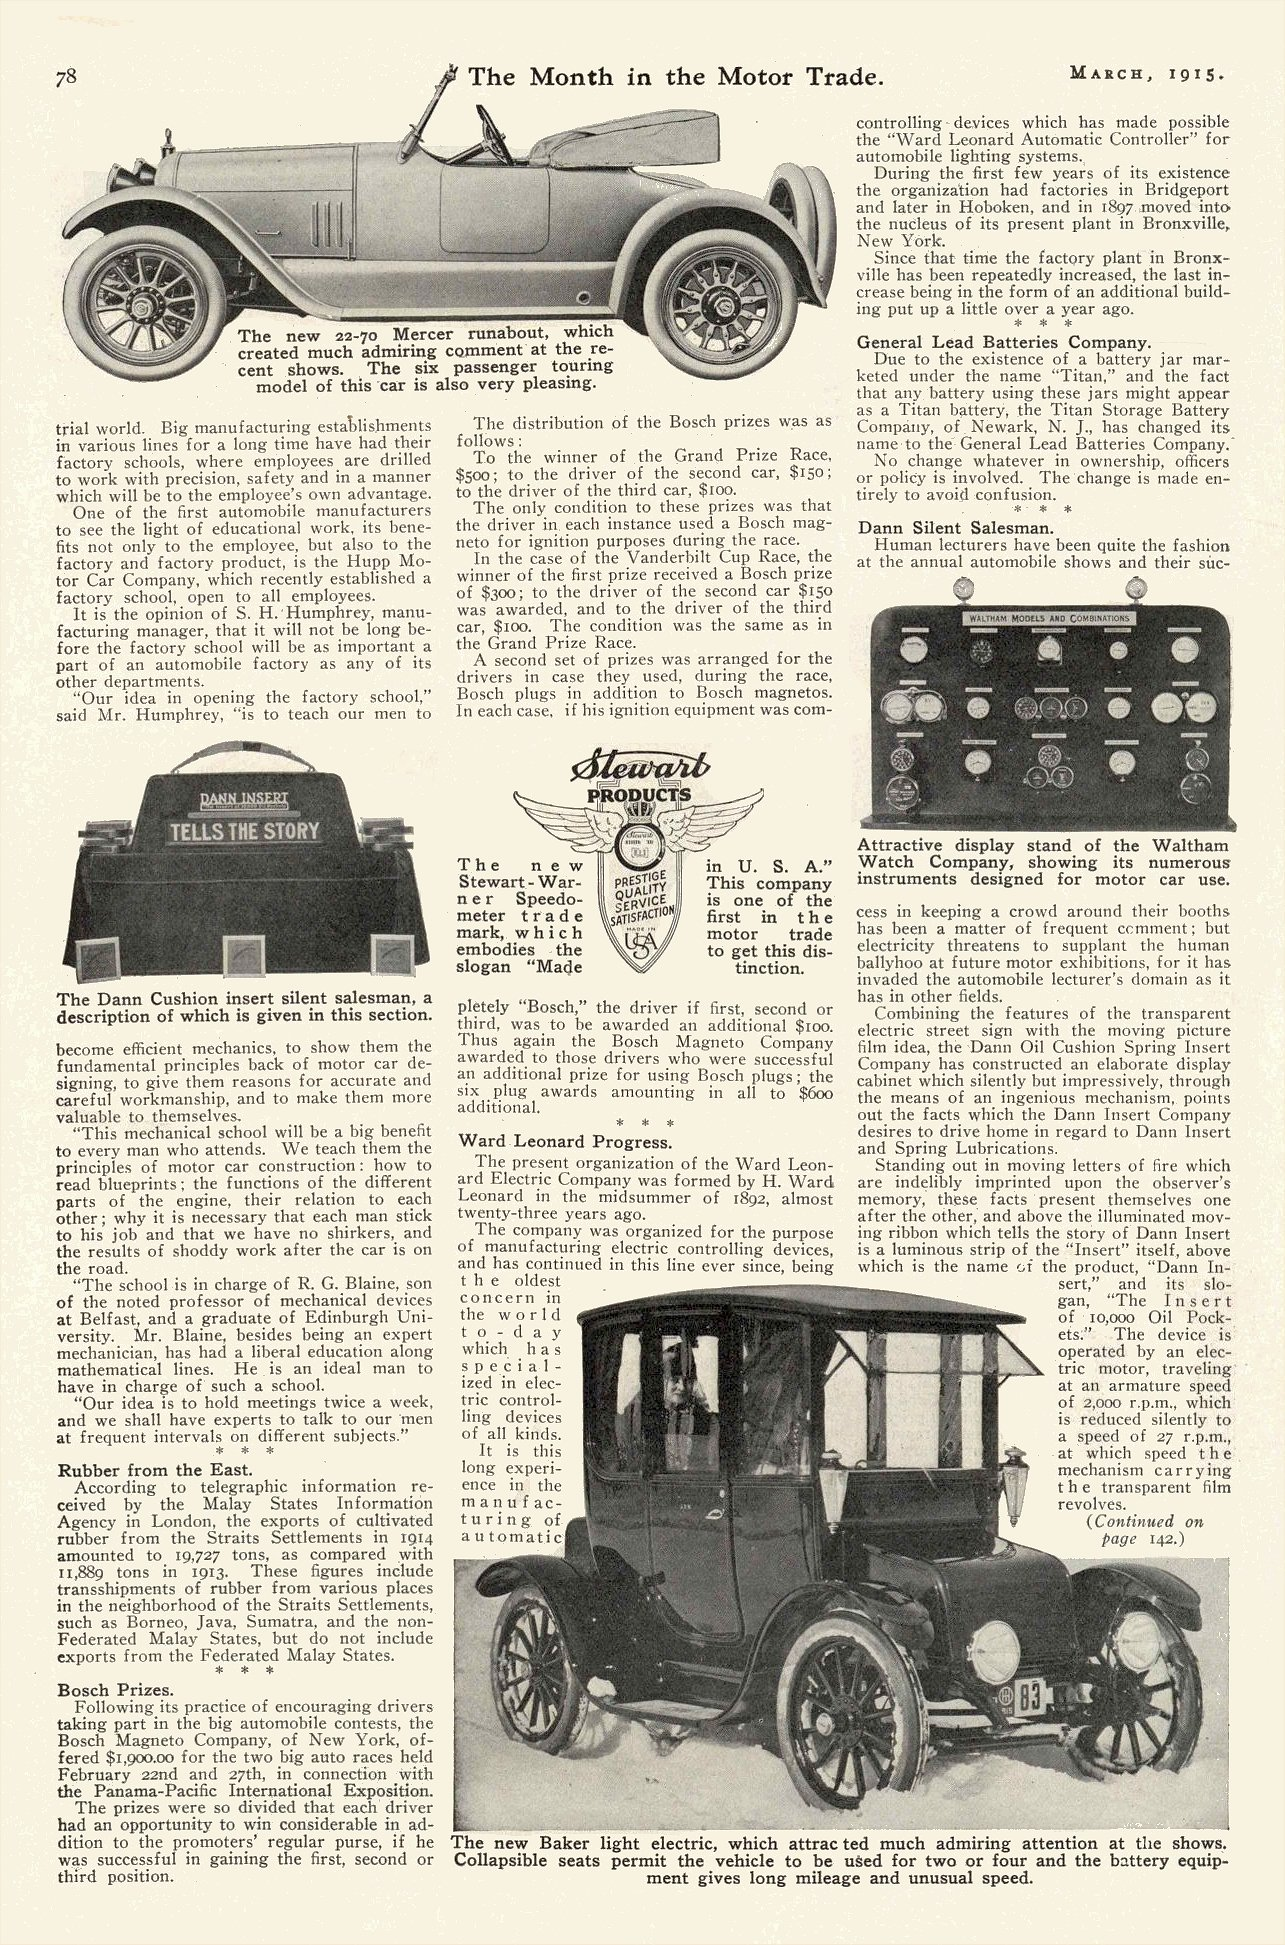 1915 3 BAKER new Baker light electric The Month in the Motor Trade March 1915 9″x13.5″ page 78